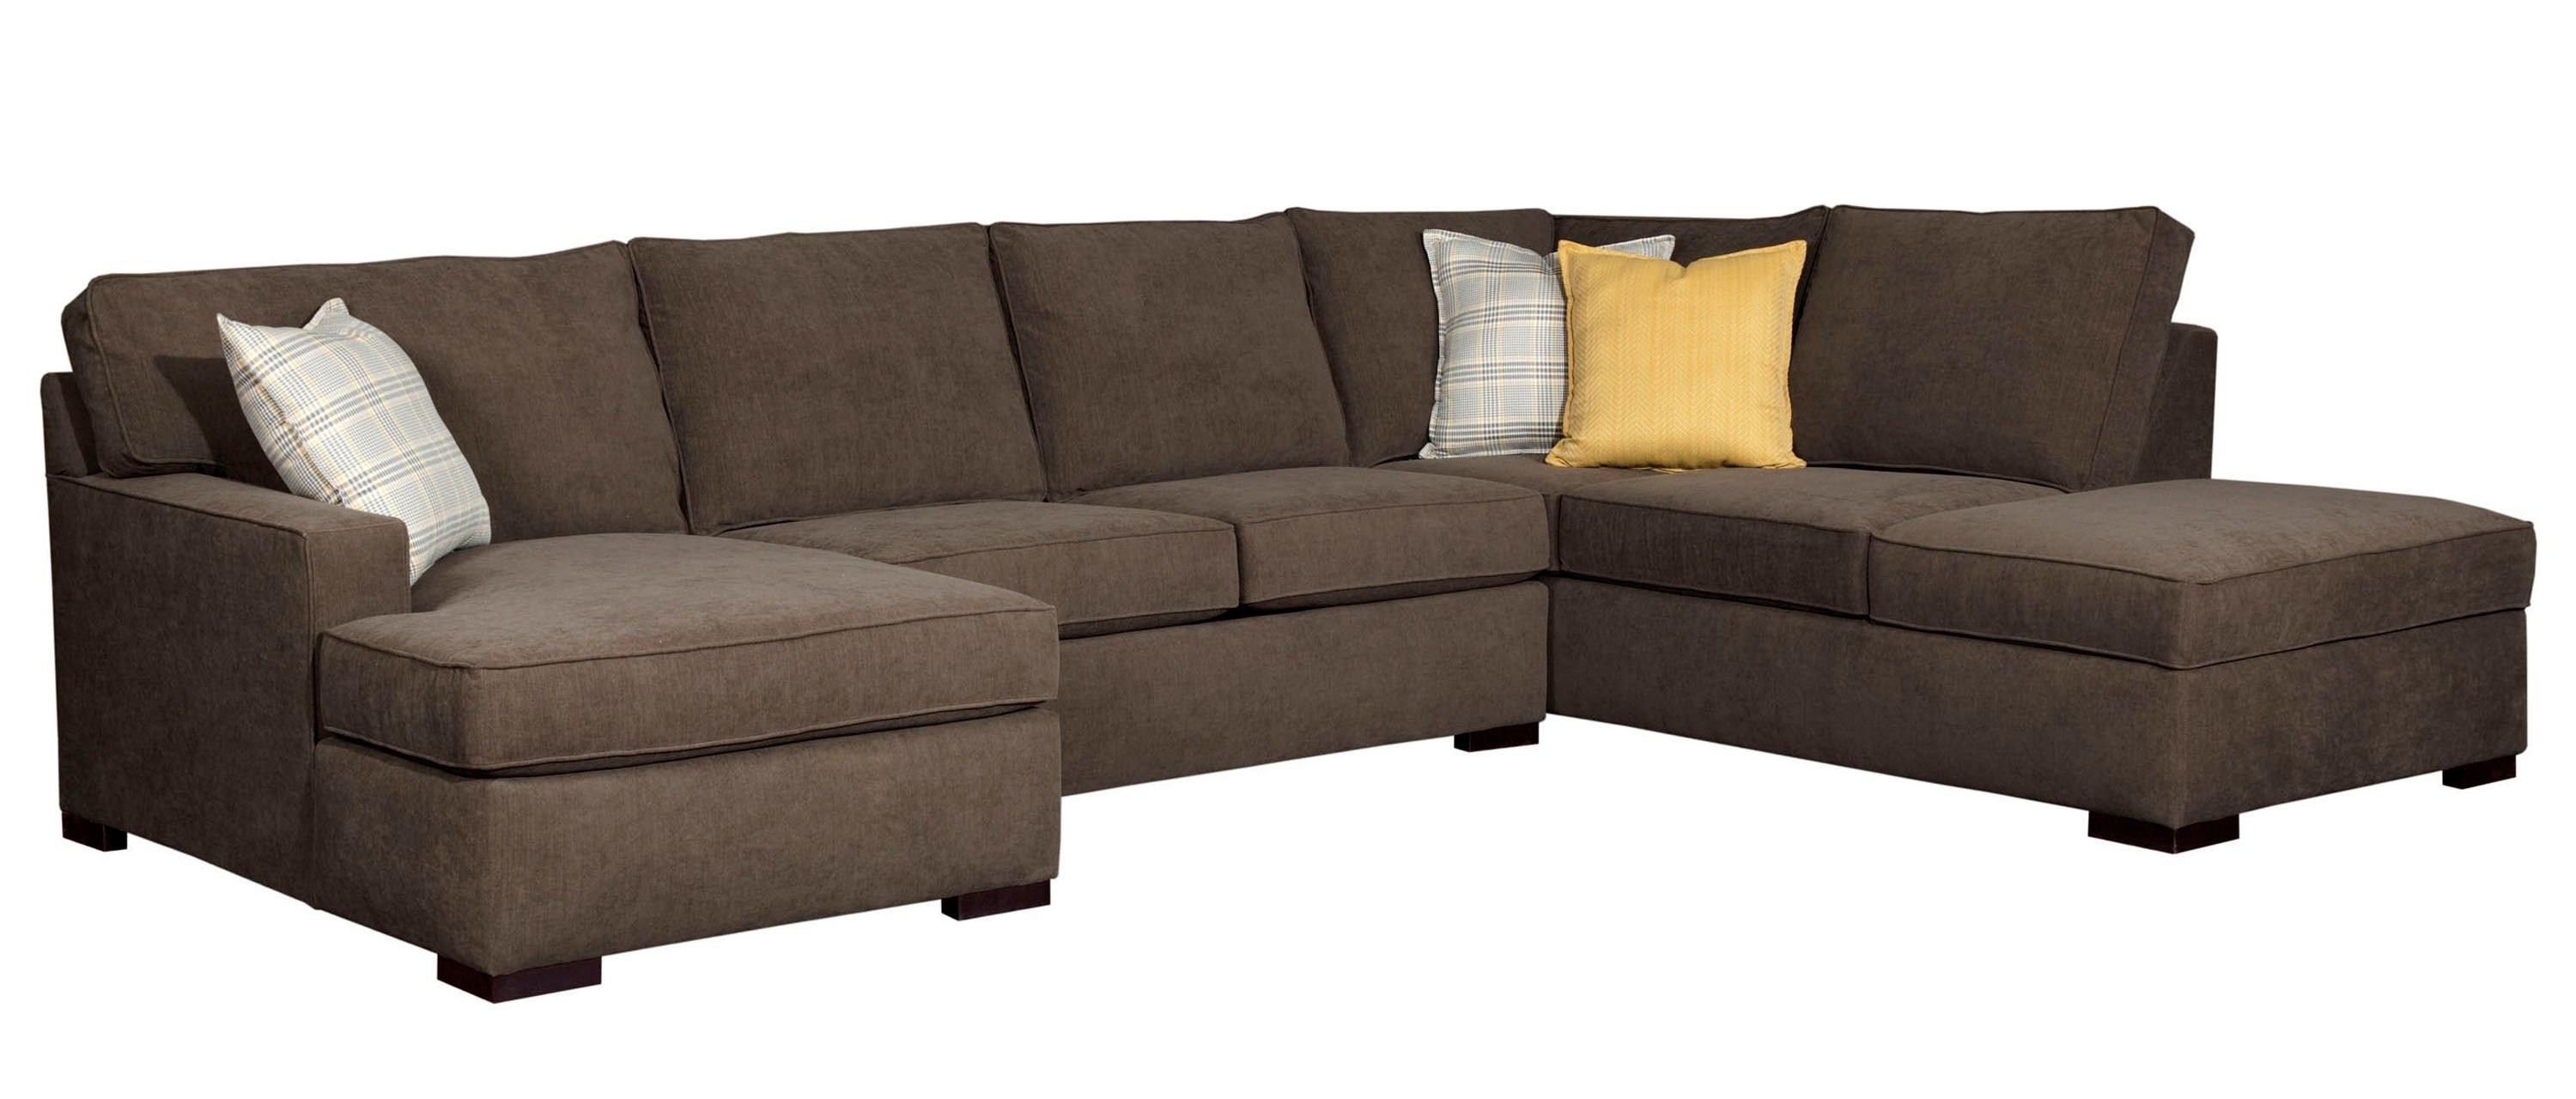 Recent Broyhill Sectional Sofas With Raphael Contemporary Sectional Sofa With Raf Corner Storage Chaise (View 2 of 15)